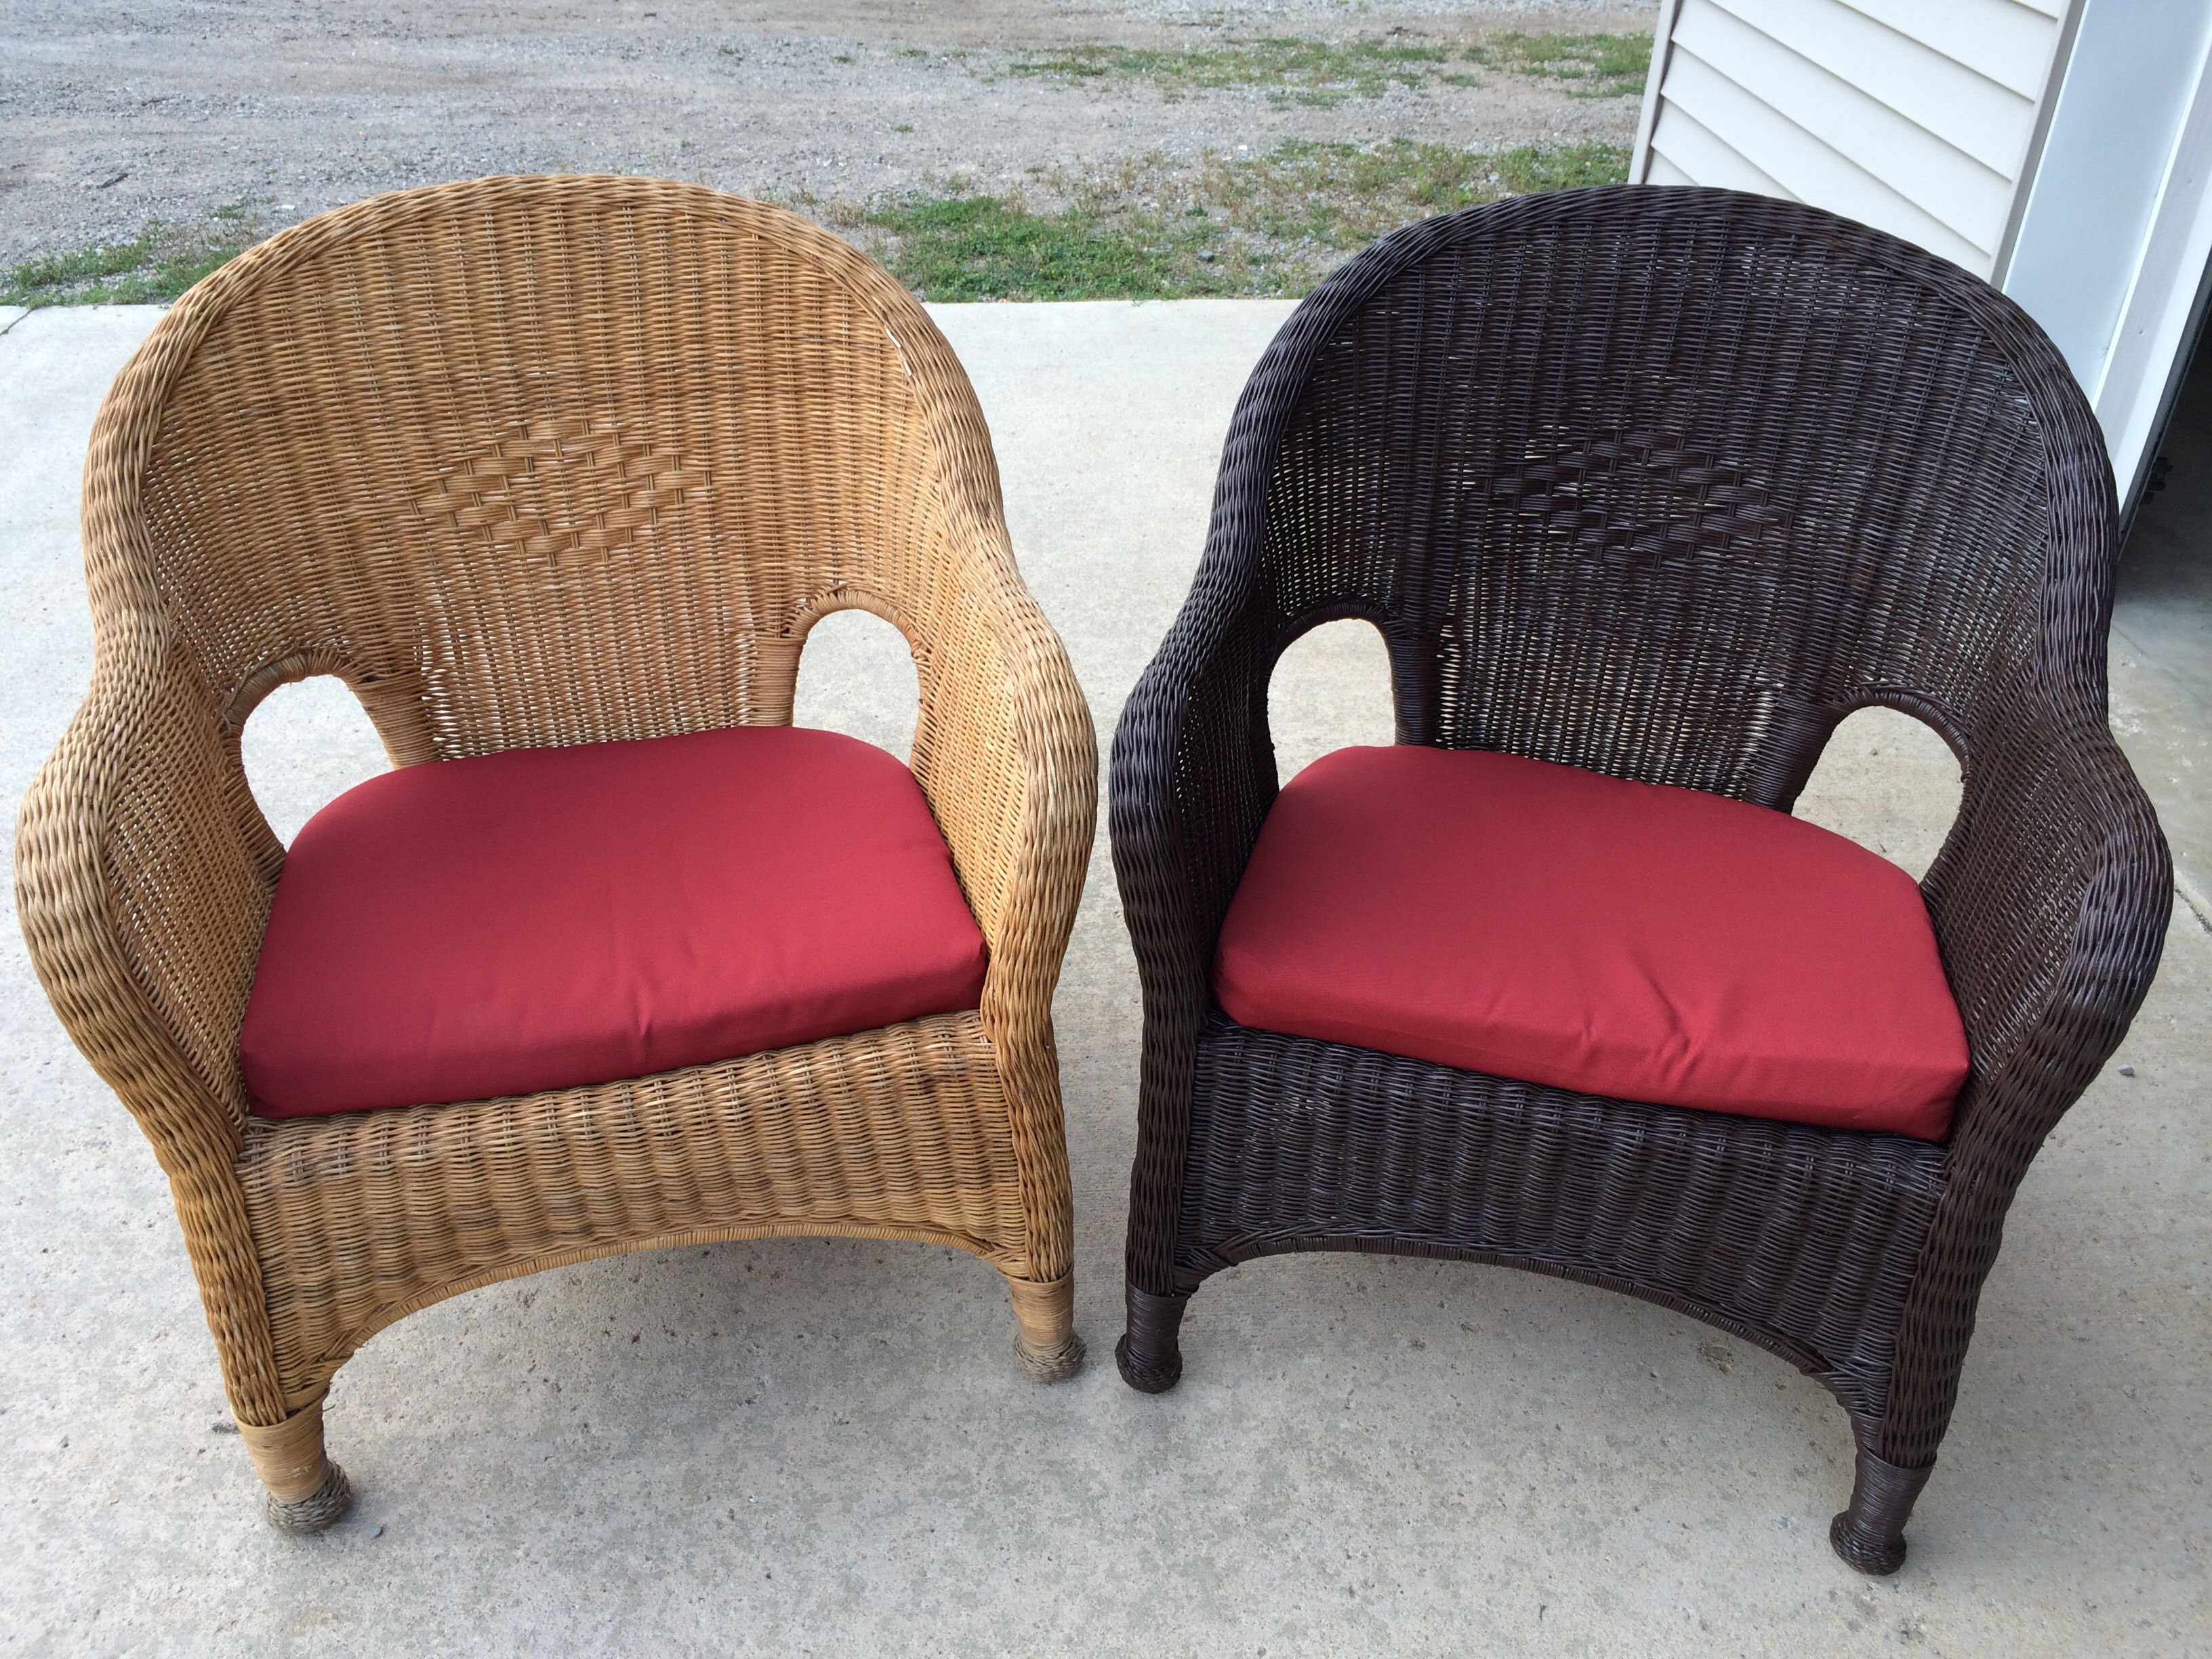 Spray painting wicker patio furniture Before and after picture